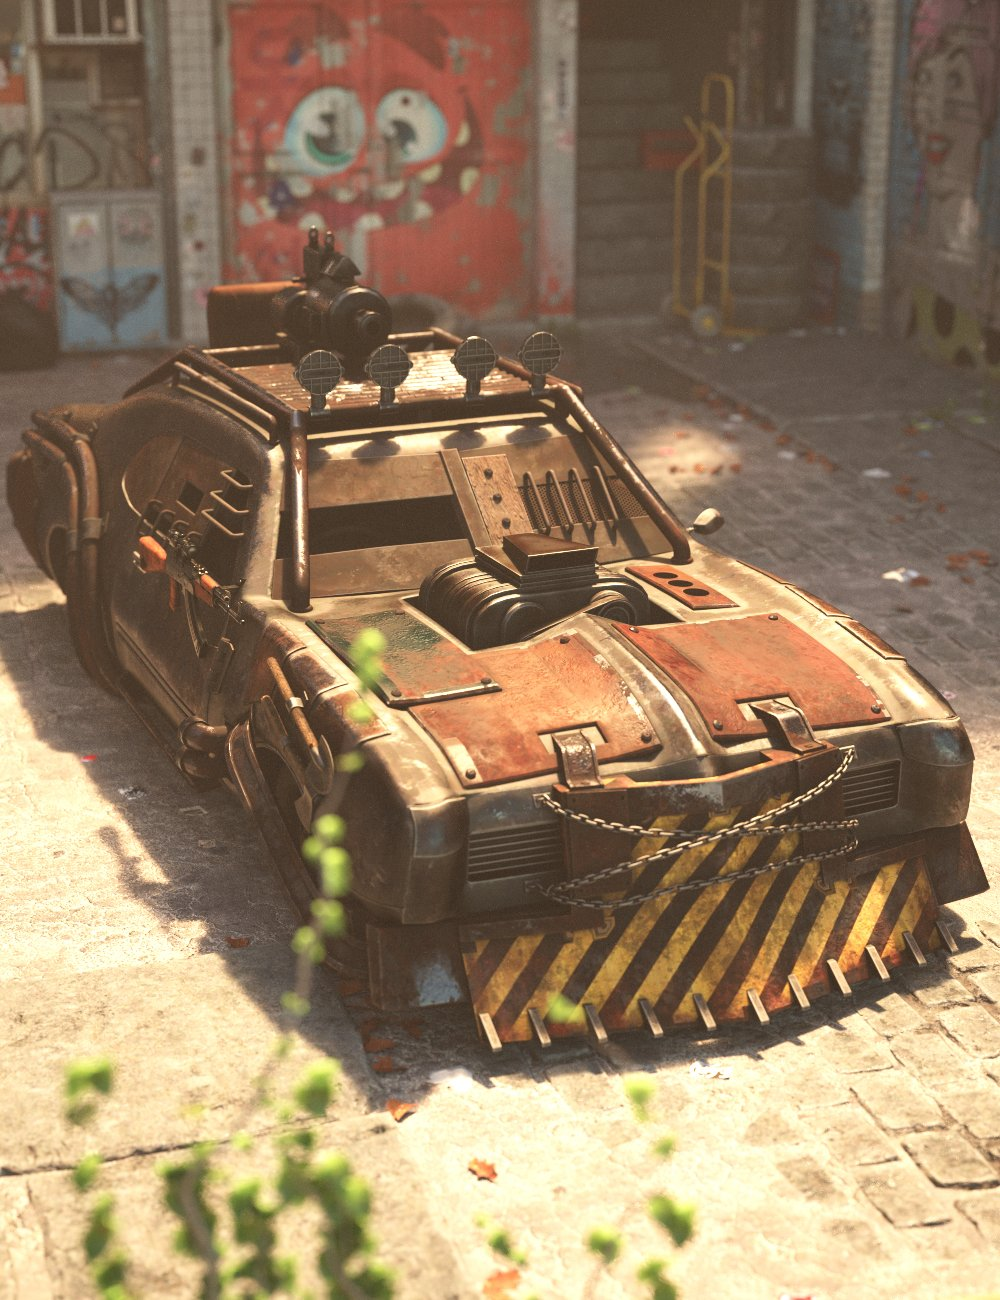 Zombie Apocalypse Vehicle by: Charlie, 3D Models by Daz 3D